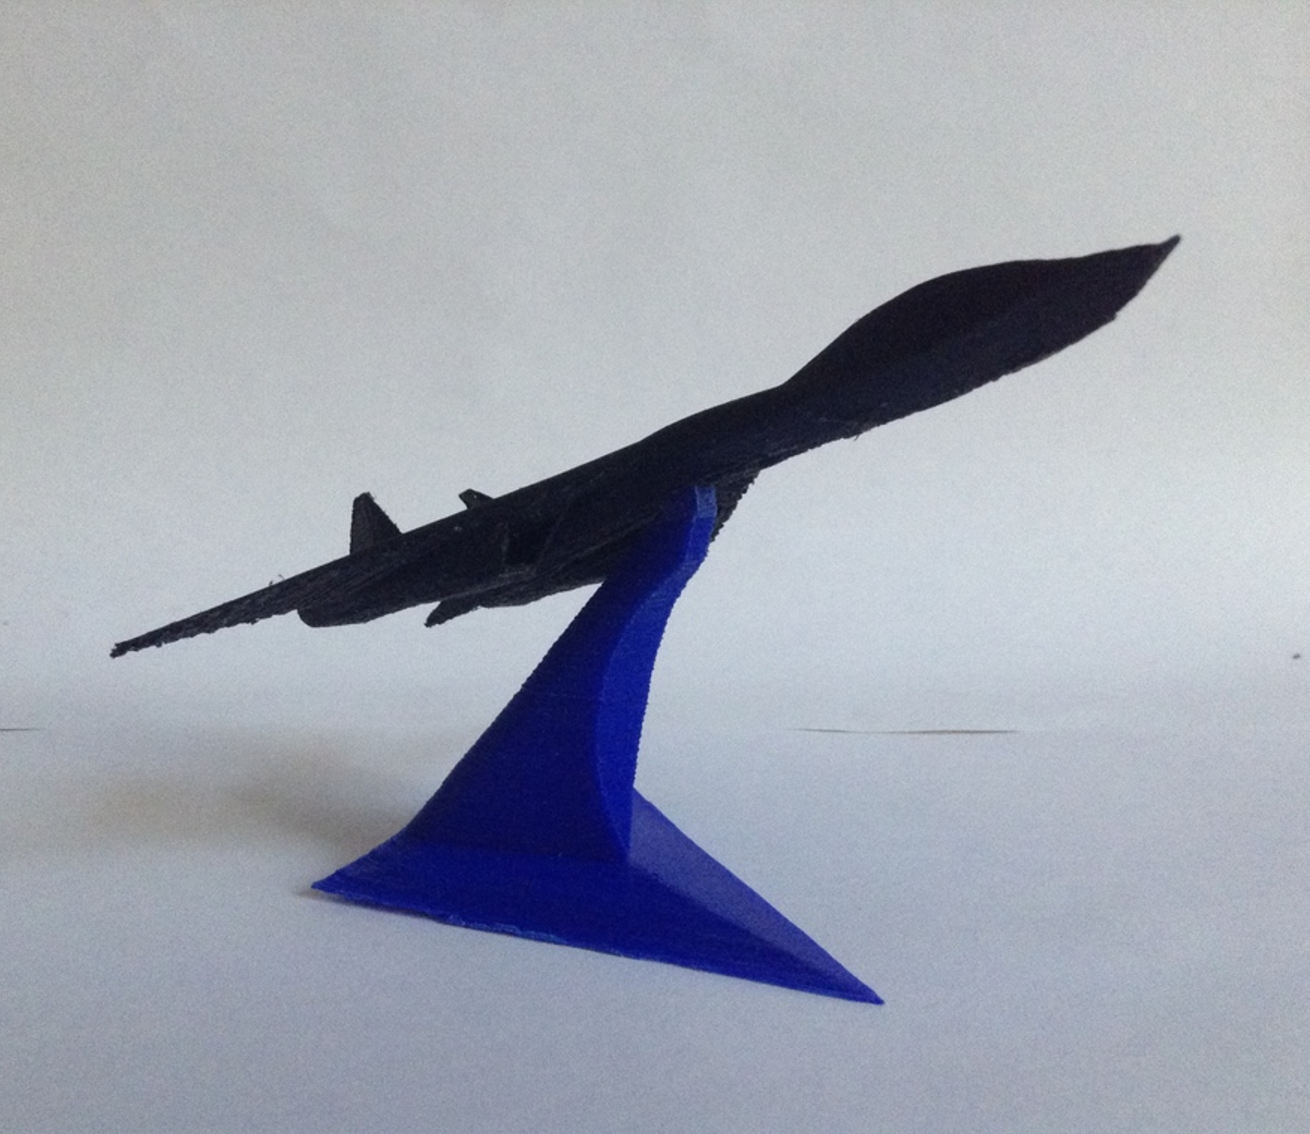 Capture d'écran 2017-08-28 à 16.53.24.png Download free STL file Starfighters with a display stand • 3D print object, morrisblue